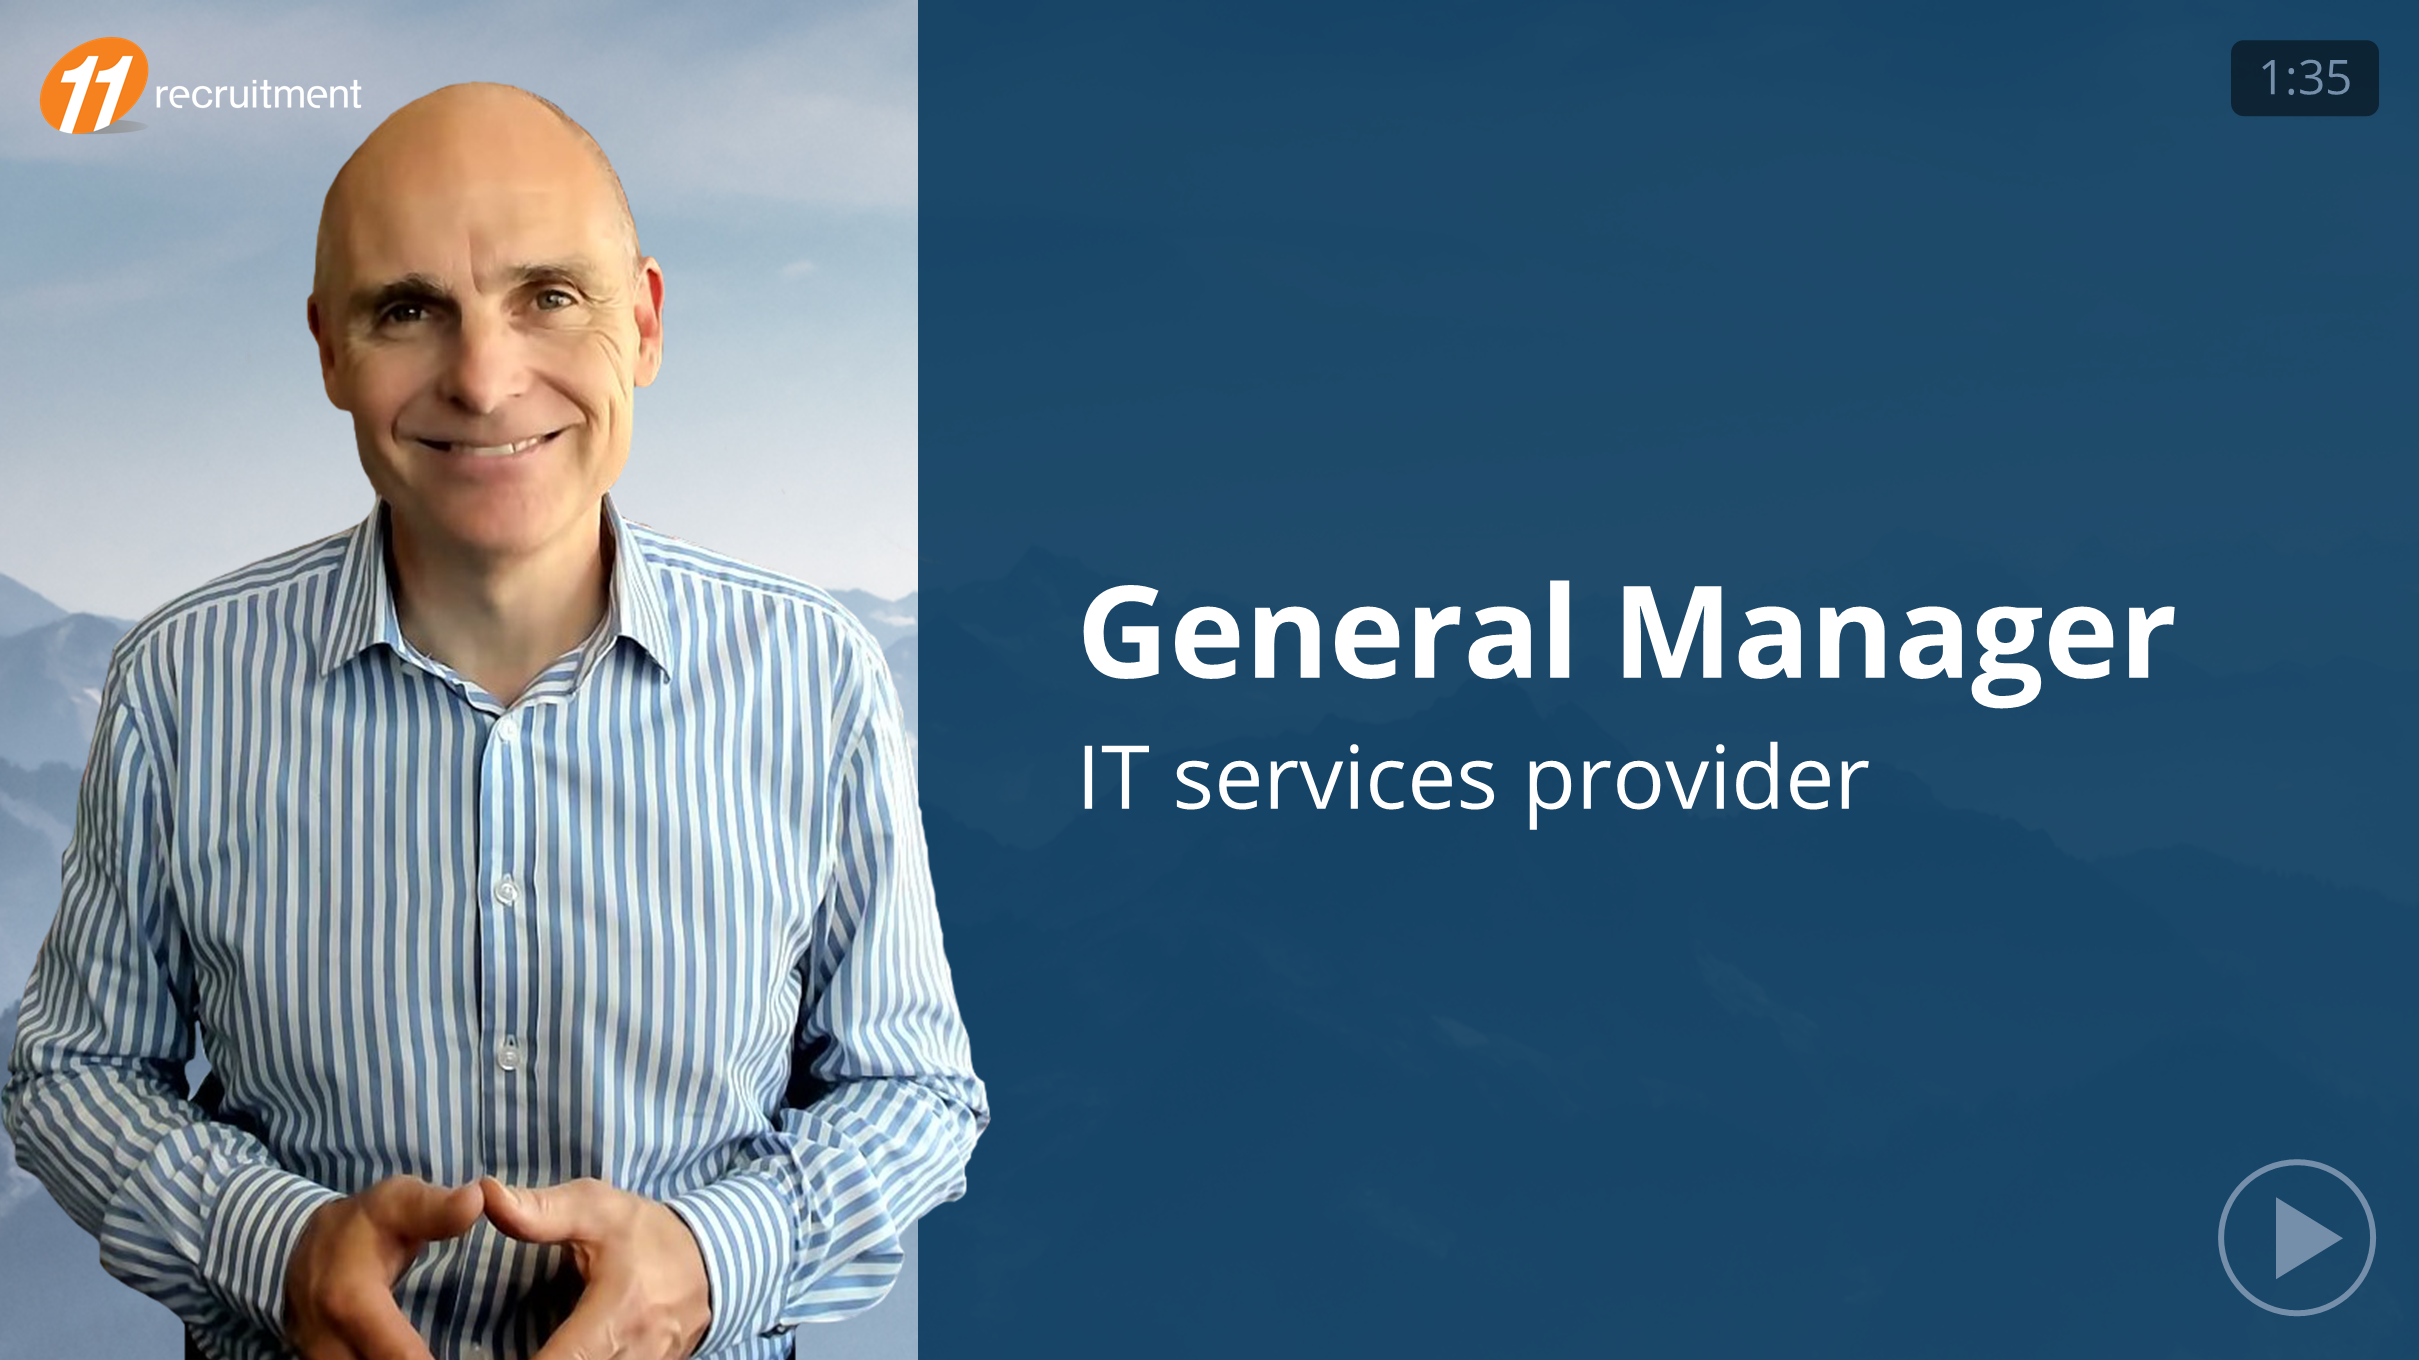 General Manager - IT